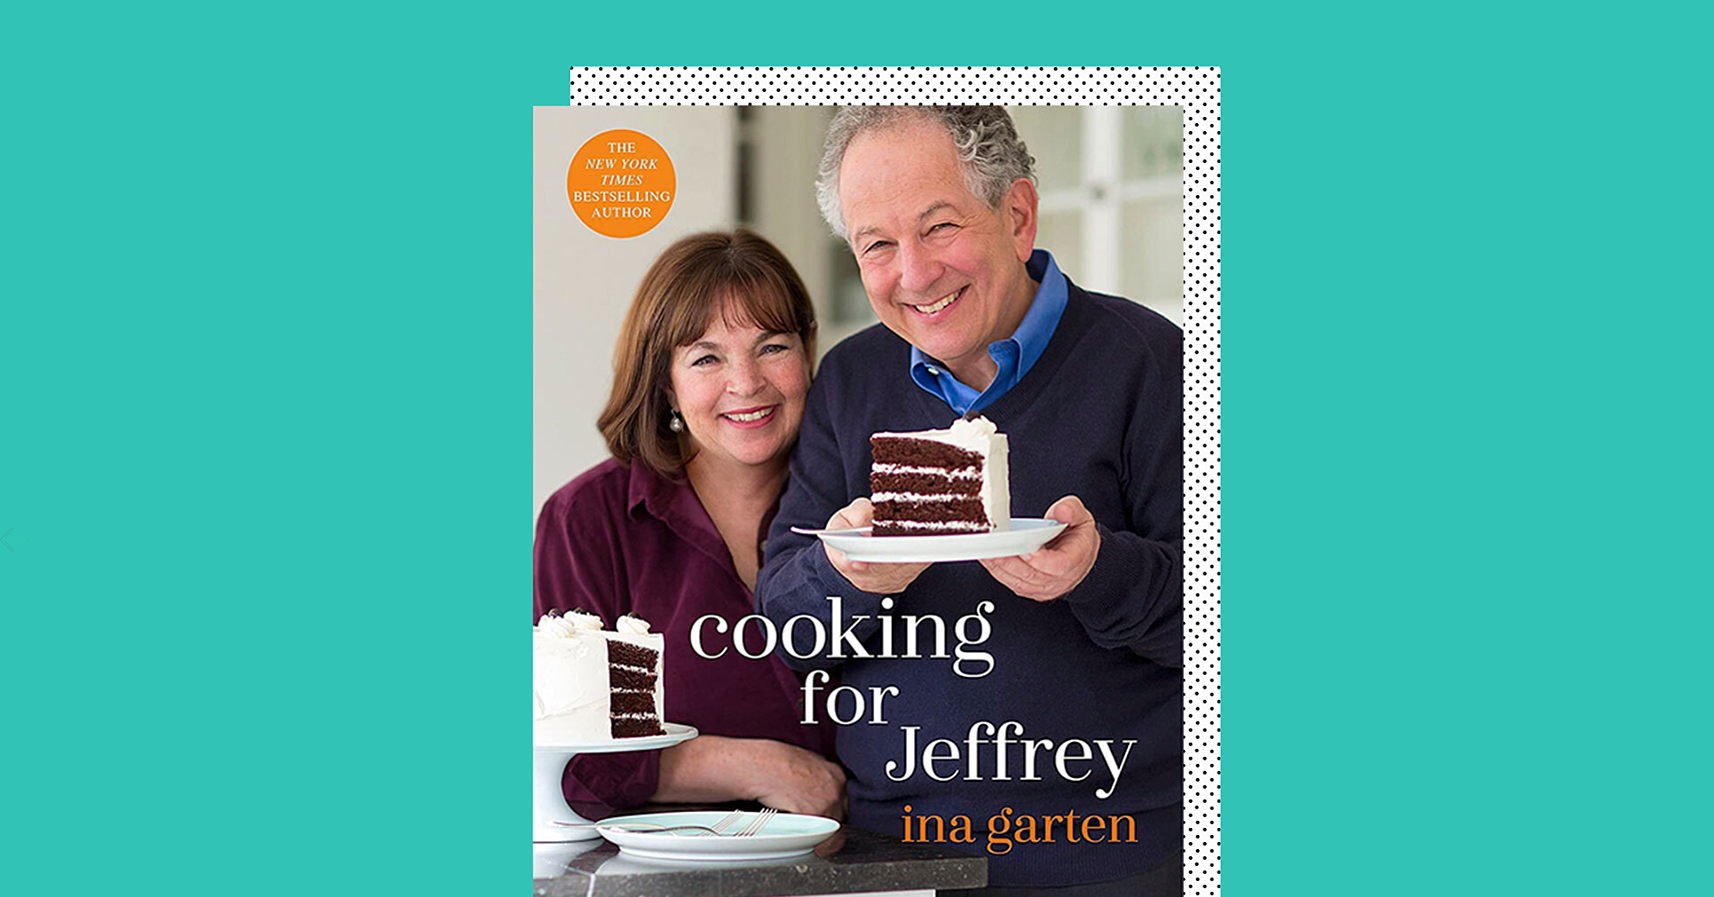 The 10 Best Cookbooks for Wedding Gifts